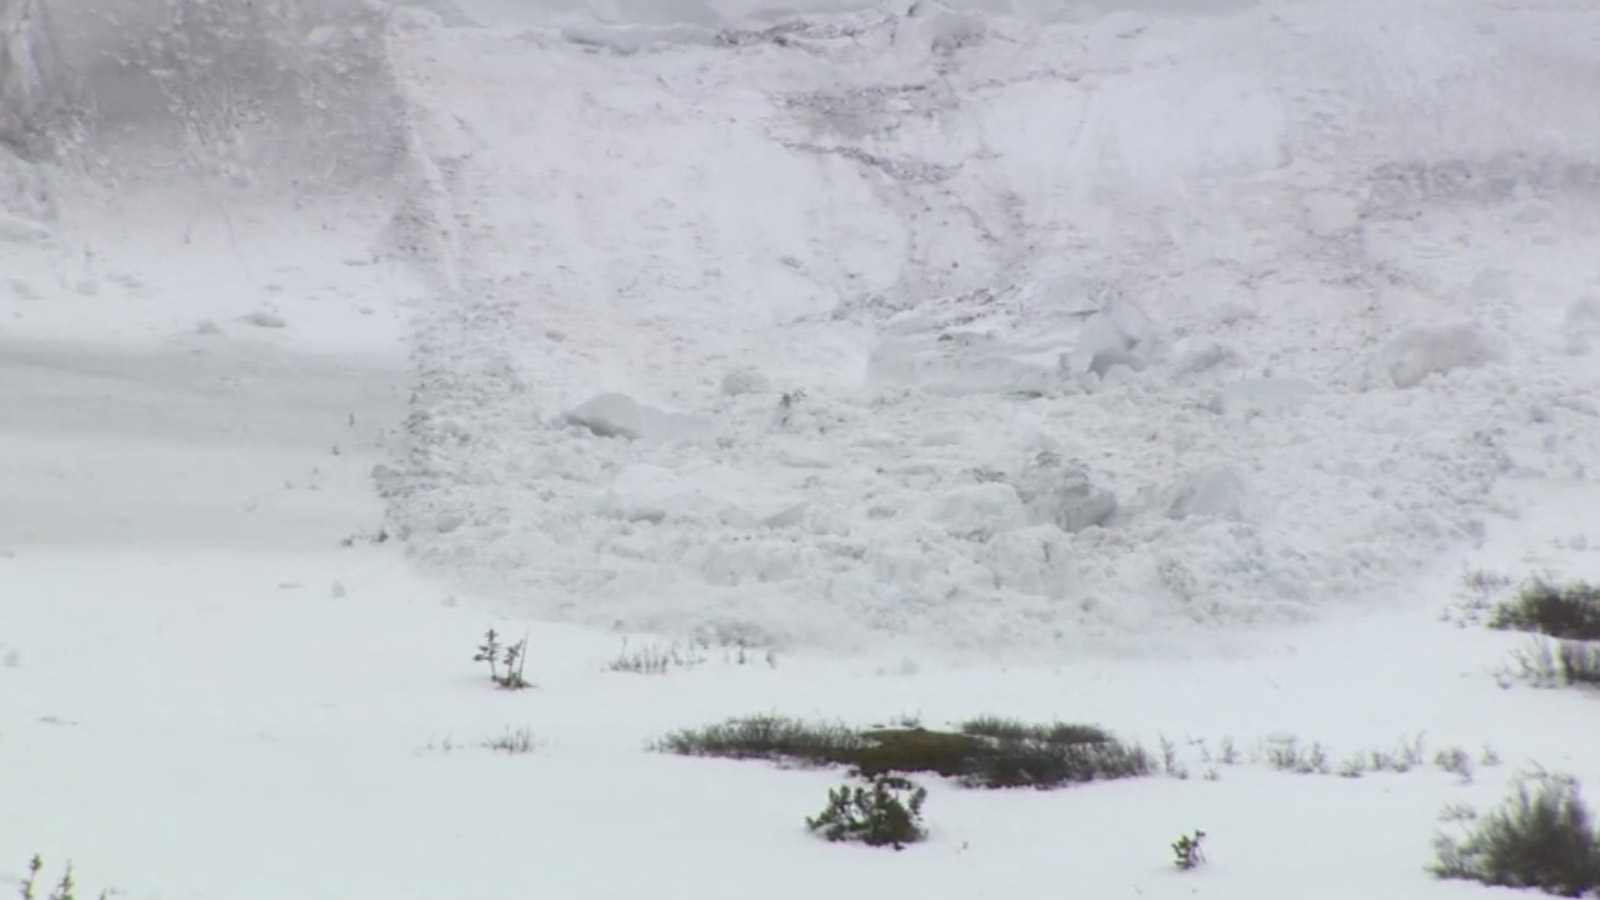 Avalanche mitigation on Independence Pass (credit: CBS)